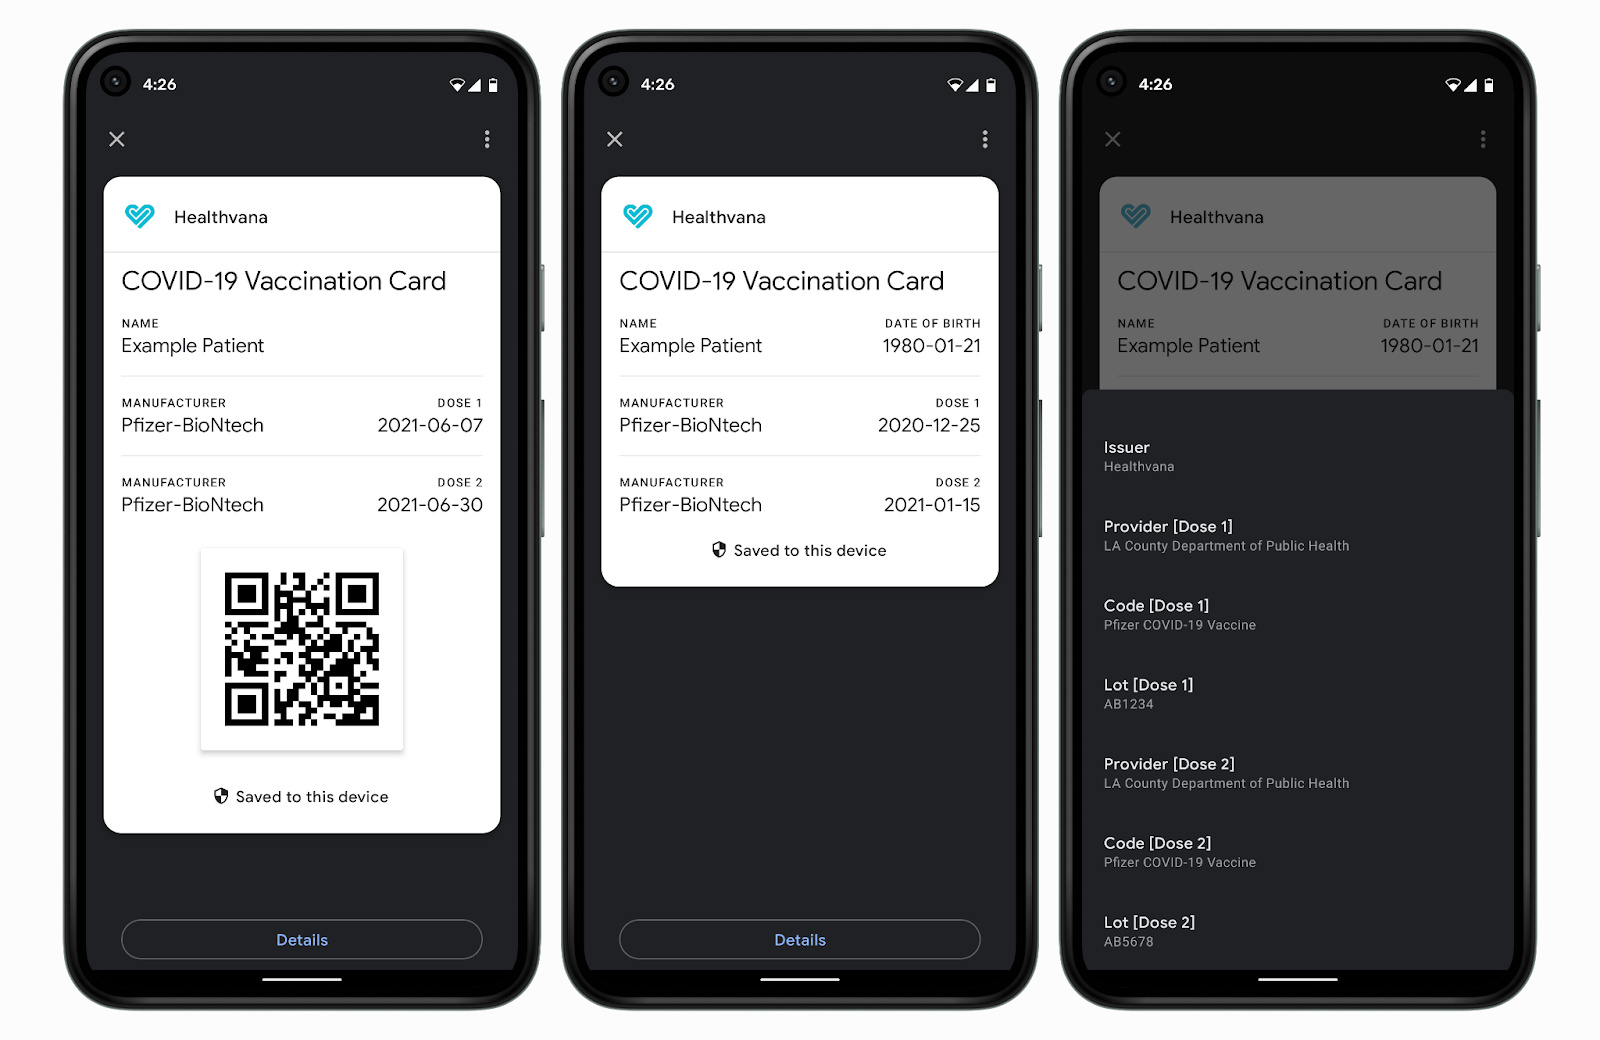 Google adds support for virtual COVID-19 vaccine cards on Android devices